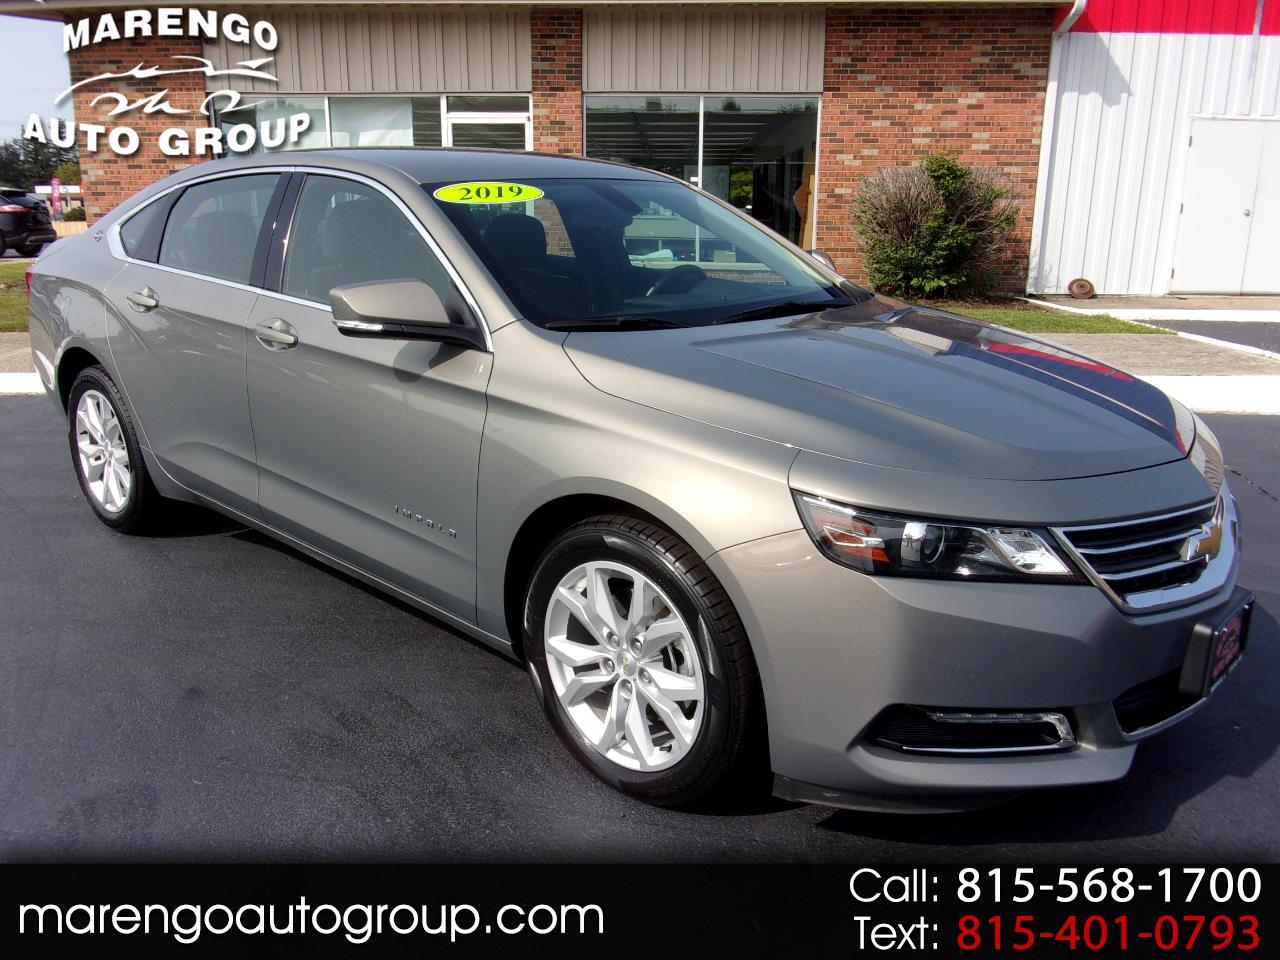 used 2019 Chevrolet Impala car, priced at $24,996